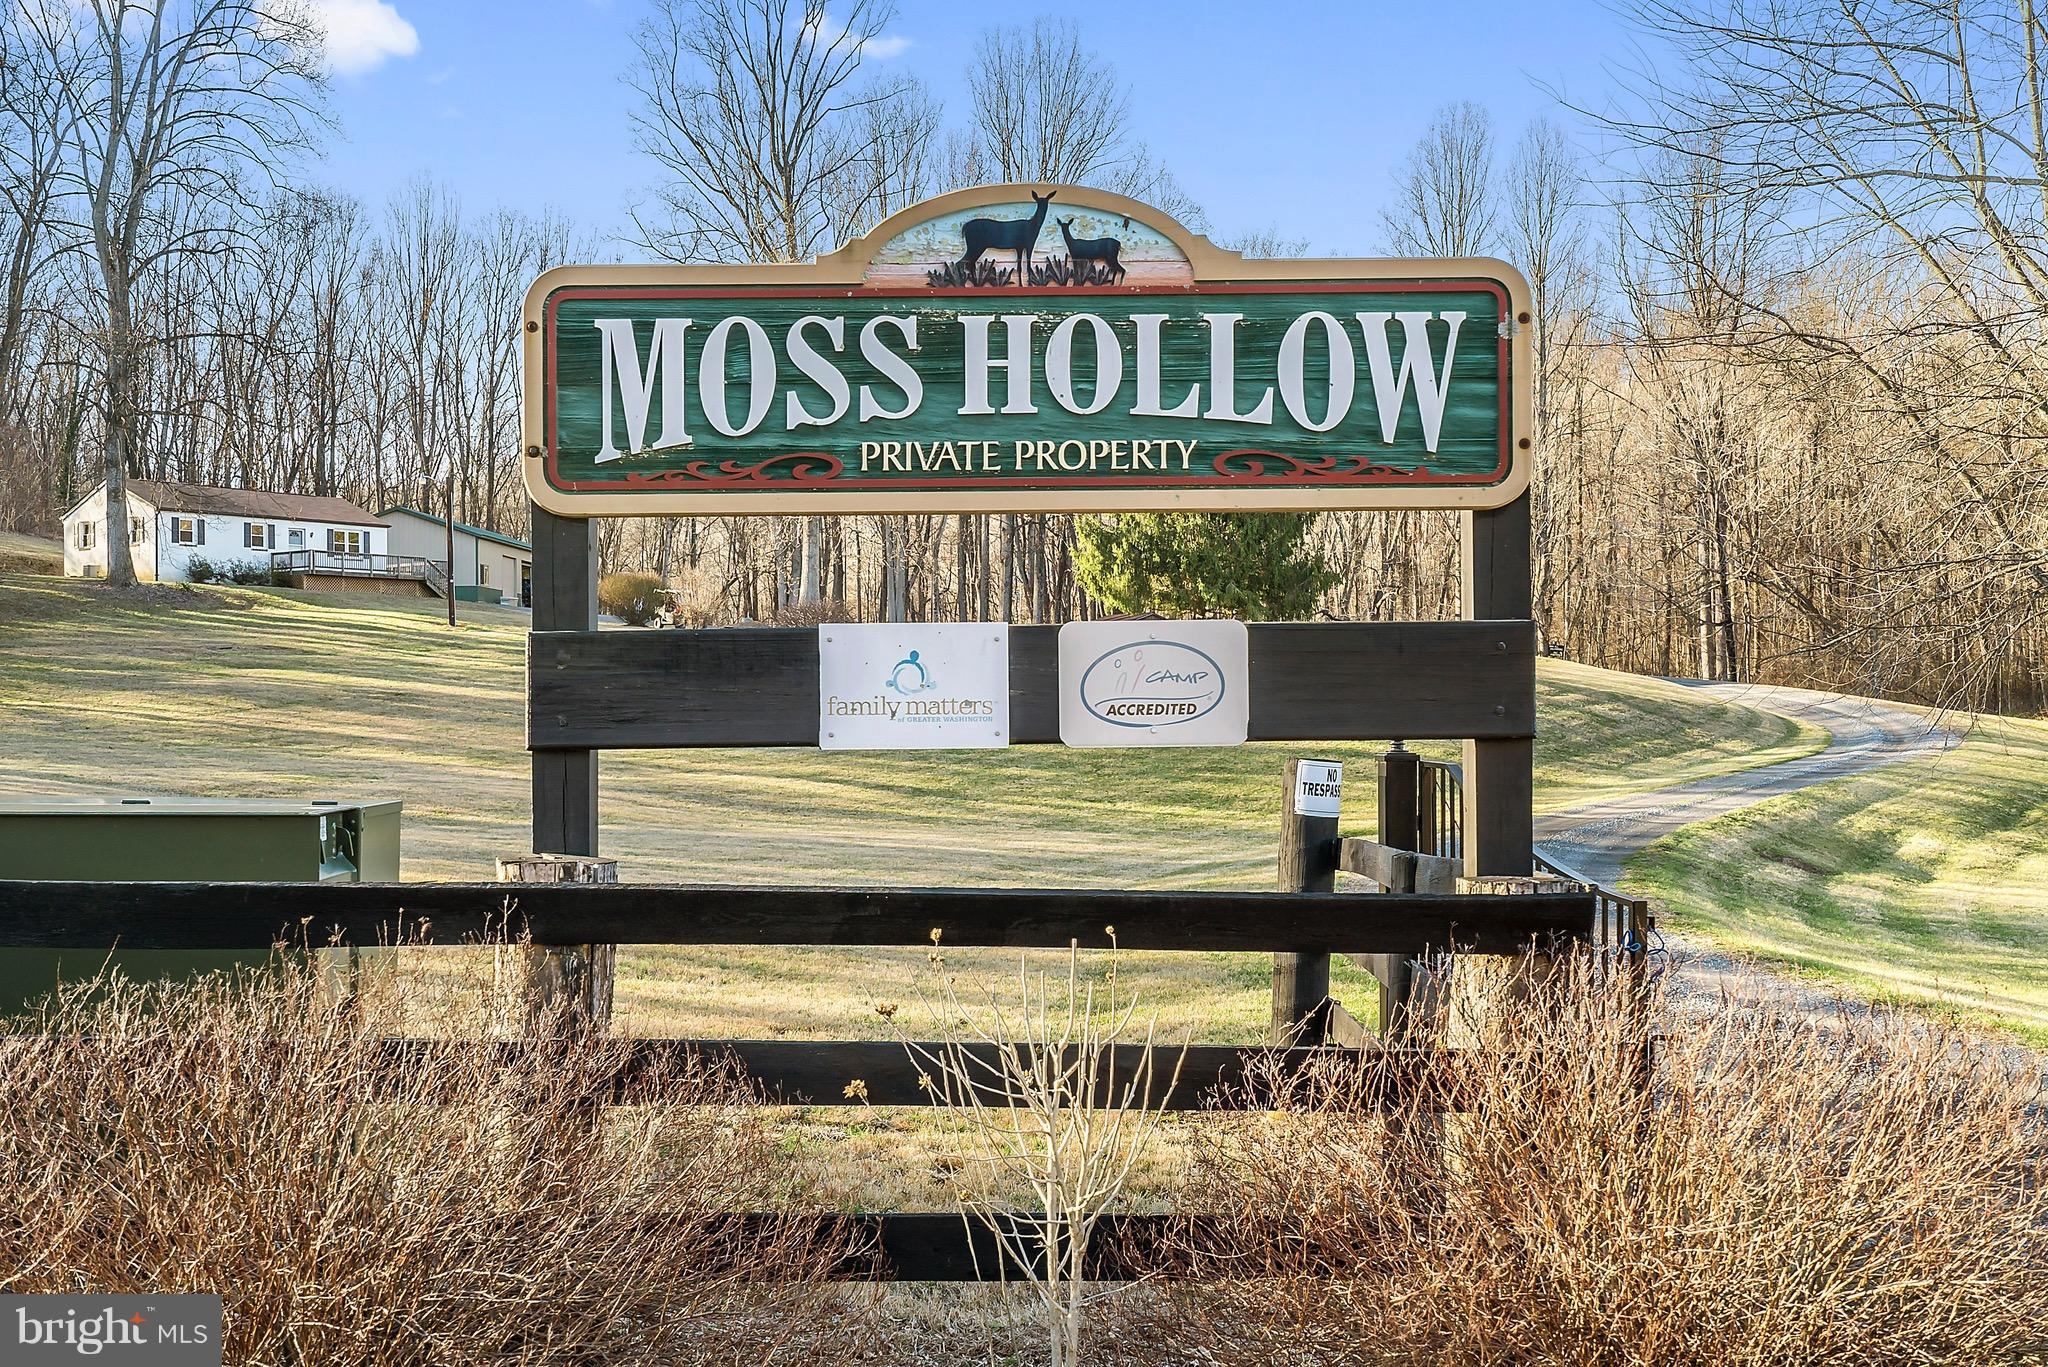 12494 MOSS HOLLOW ROAD, MARKHAM, VA 22643